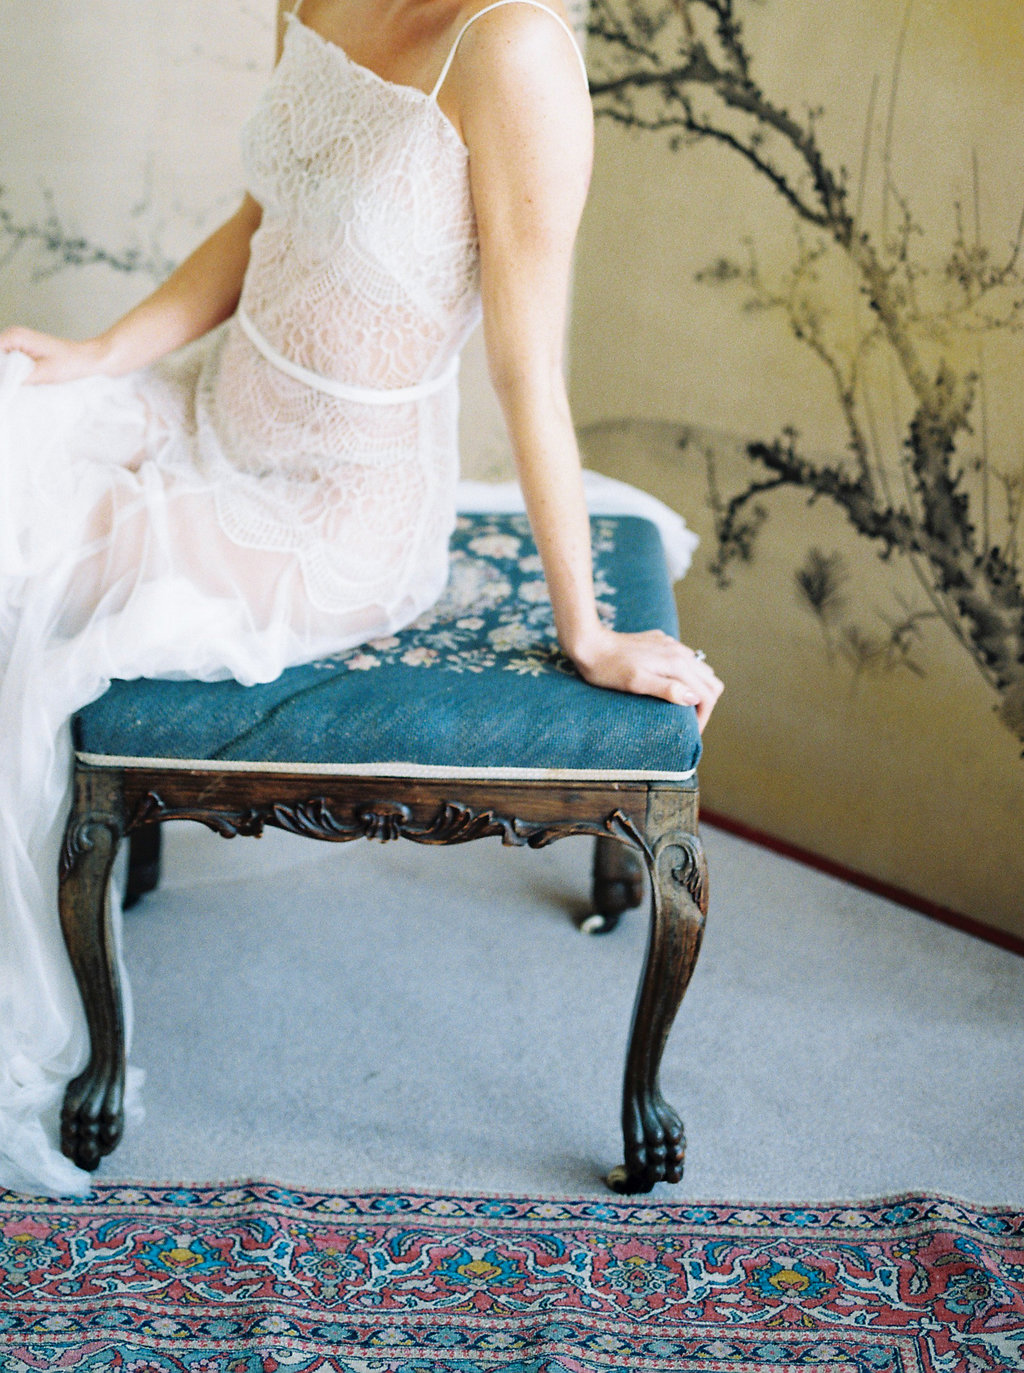 lace+wedding+dress.jpg